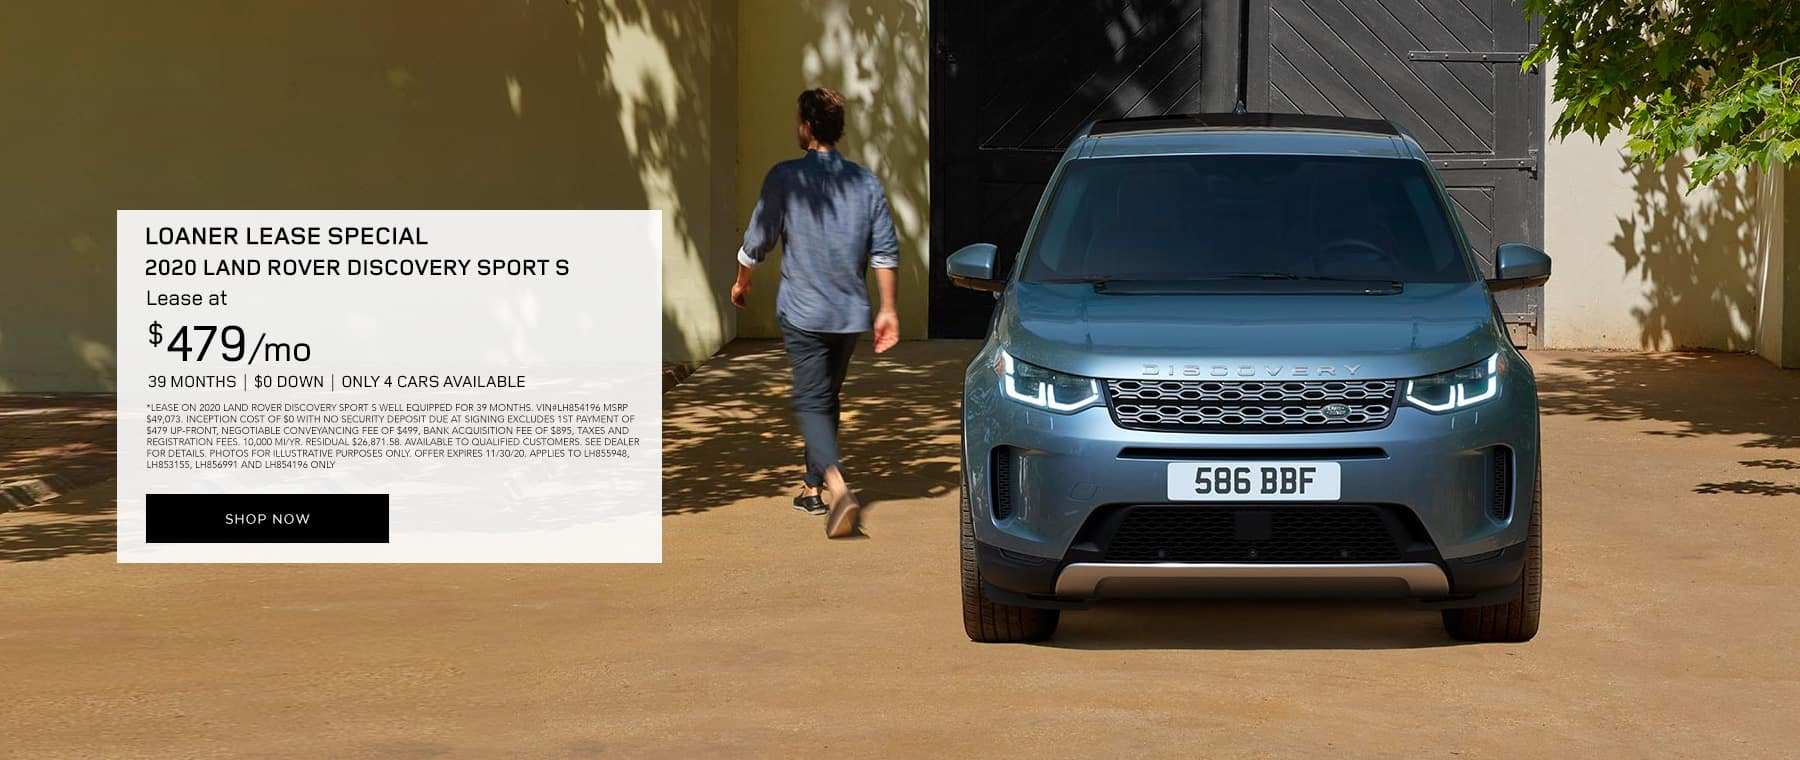 2020 LR Discovery Sport S